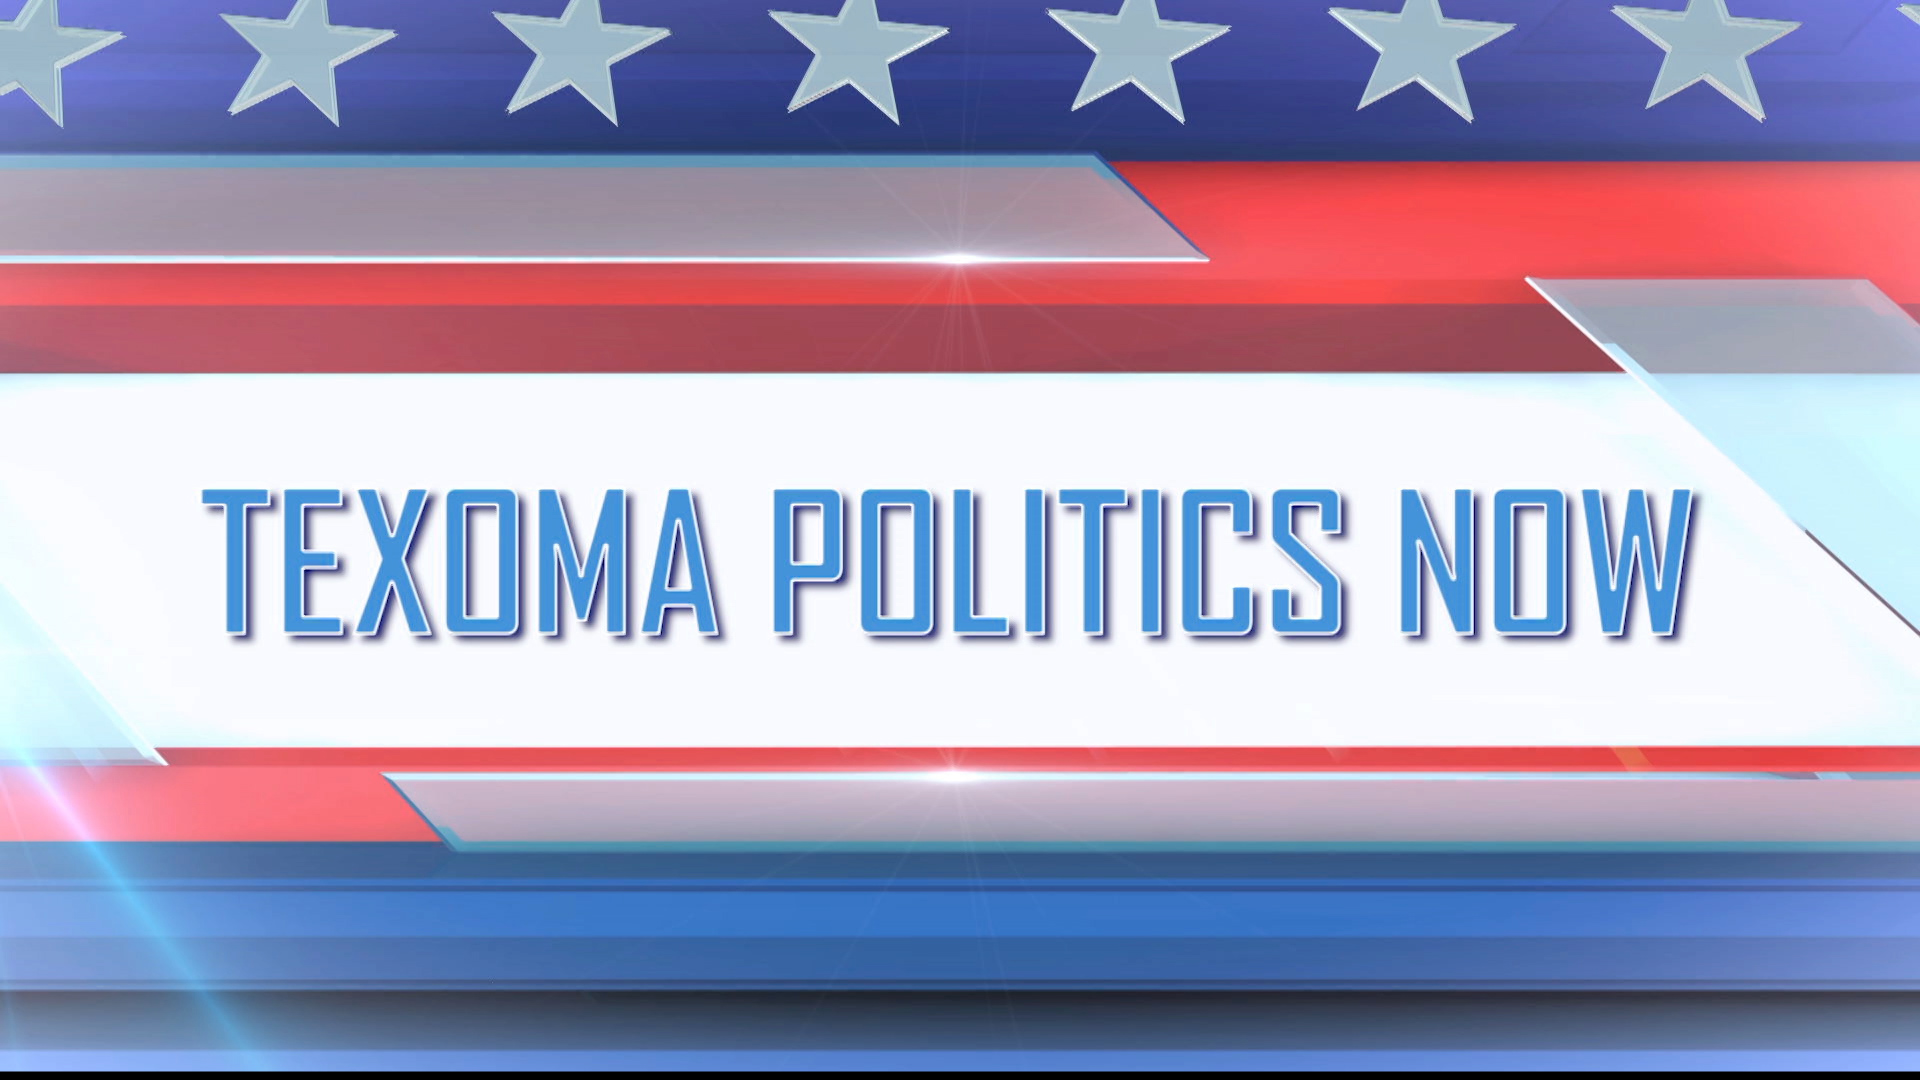 TEXOMA POLITICS NOW_1537571091381.jpg.jpg